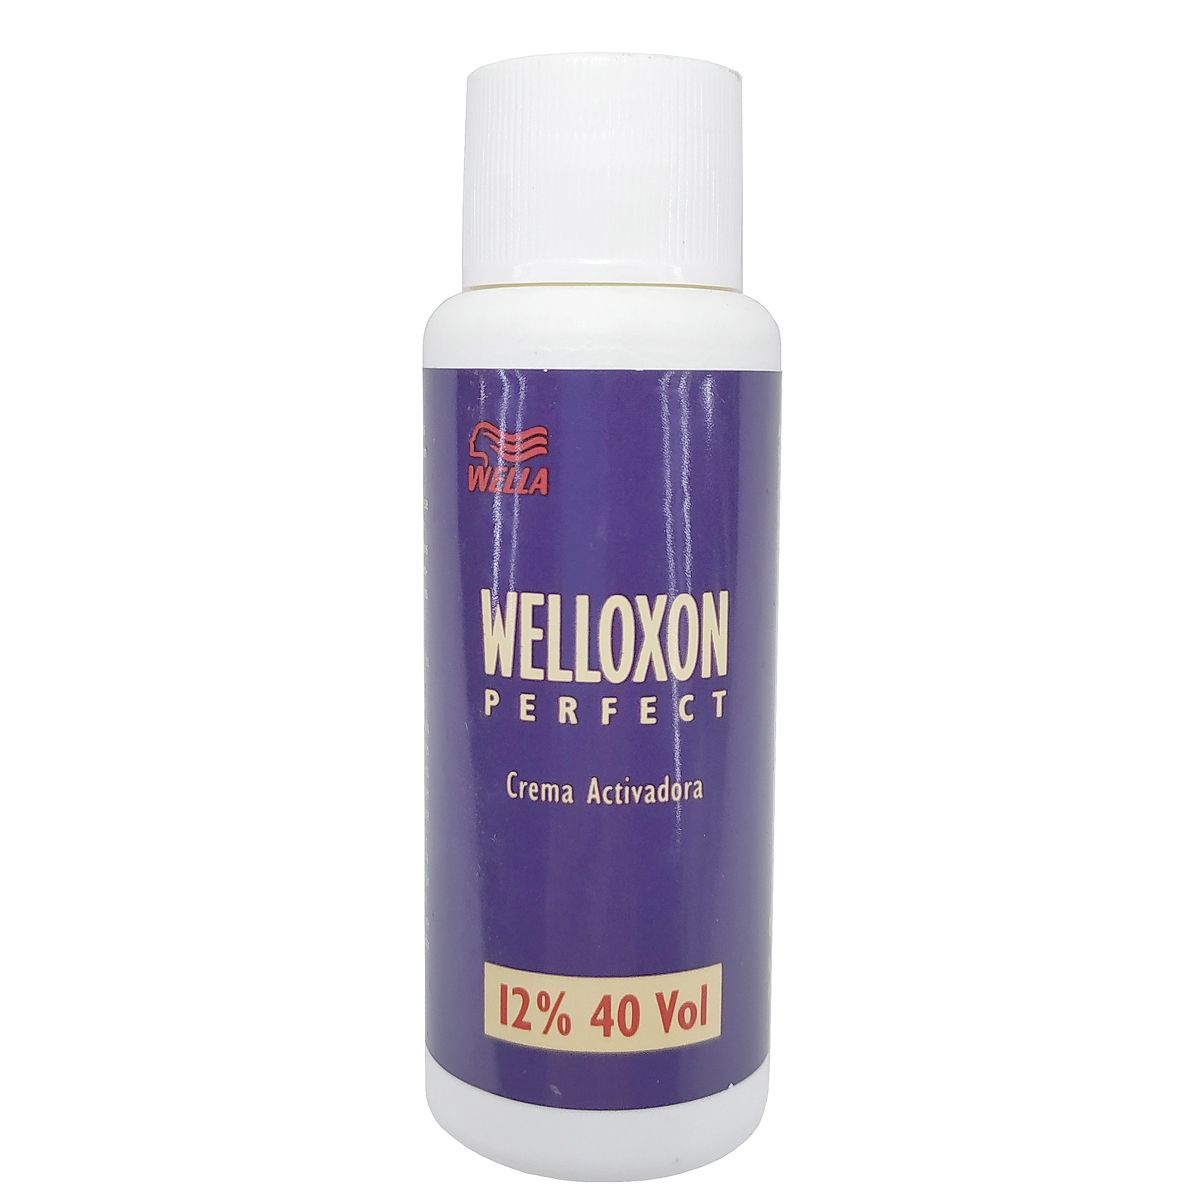 Wella Welloxon Perfect OXIDANTE CREMA 40 VOL 60ml